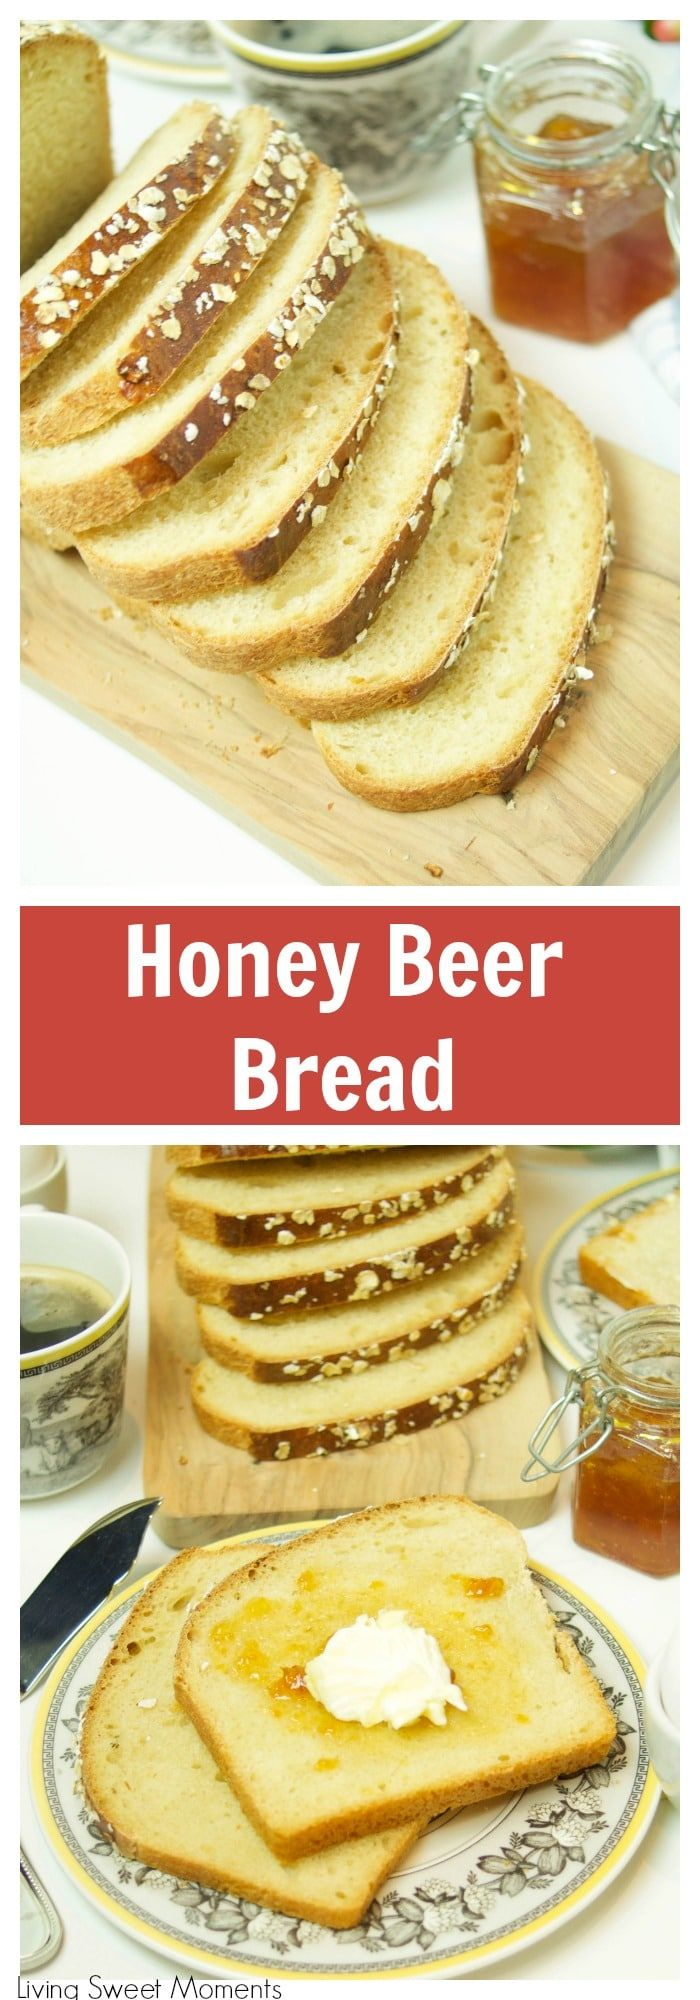 This soft and delicate Honey Beer Bread recipe has a wonderful taste and aroma. Perfect when served warmed with butter or as toast in the morning. More homemade bread recipes at livingsweetmoments.com via @Livingsmoments